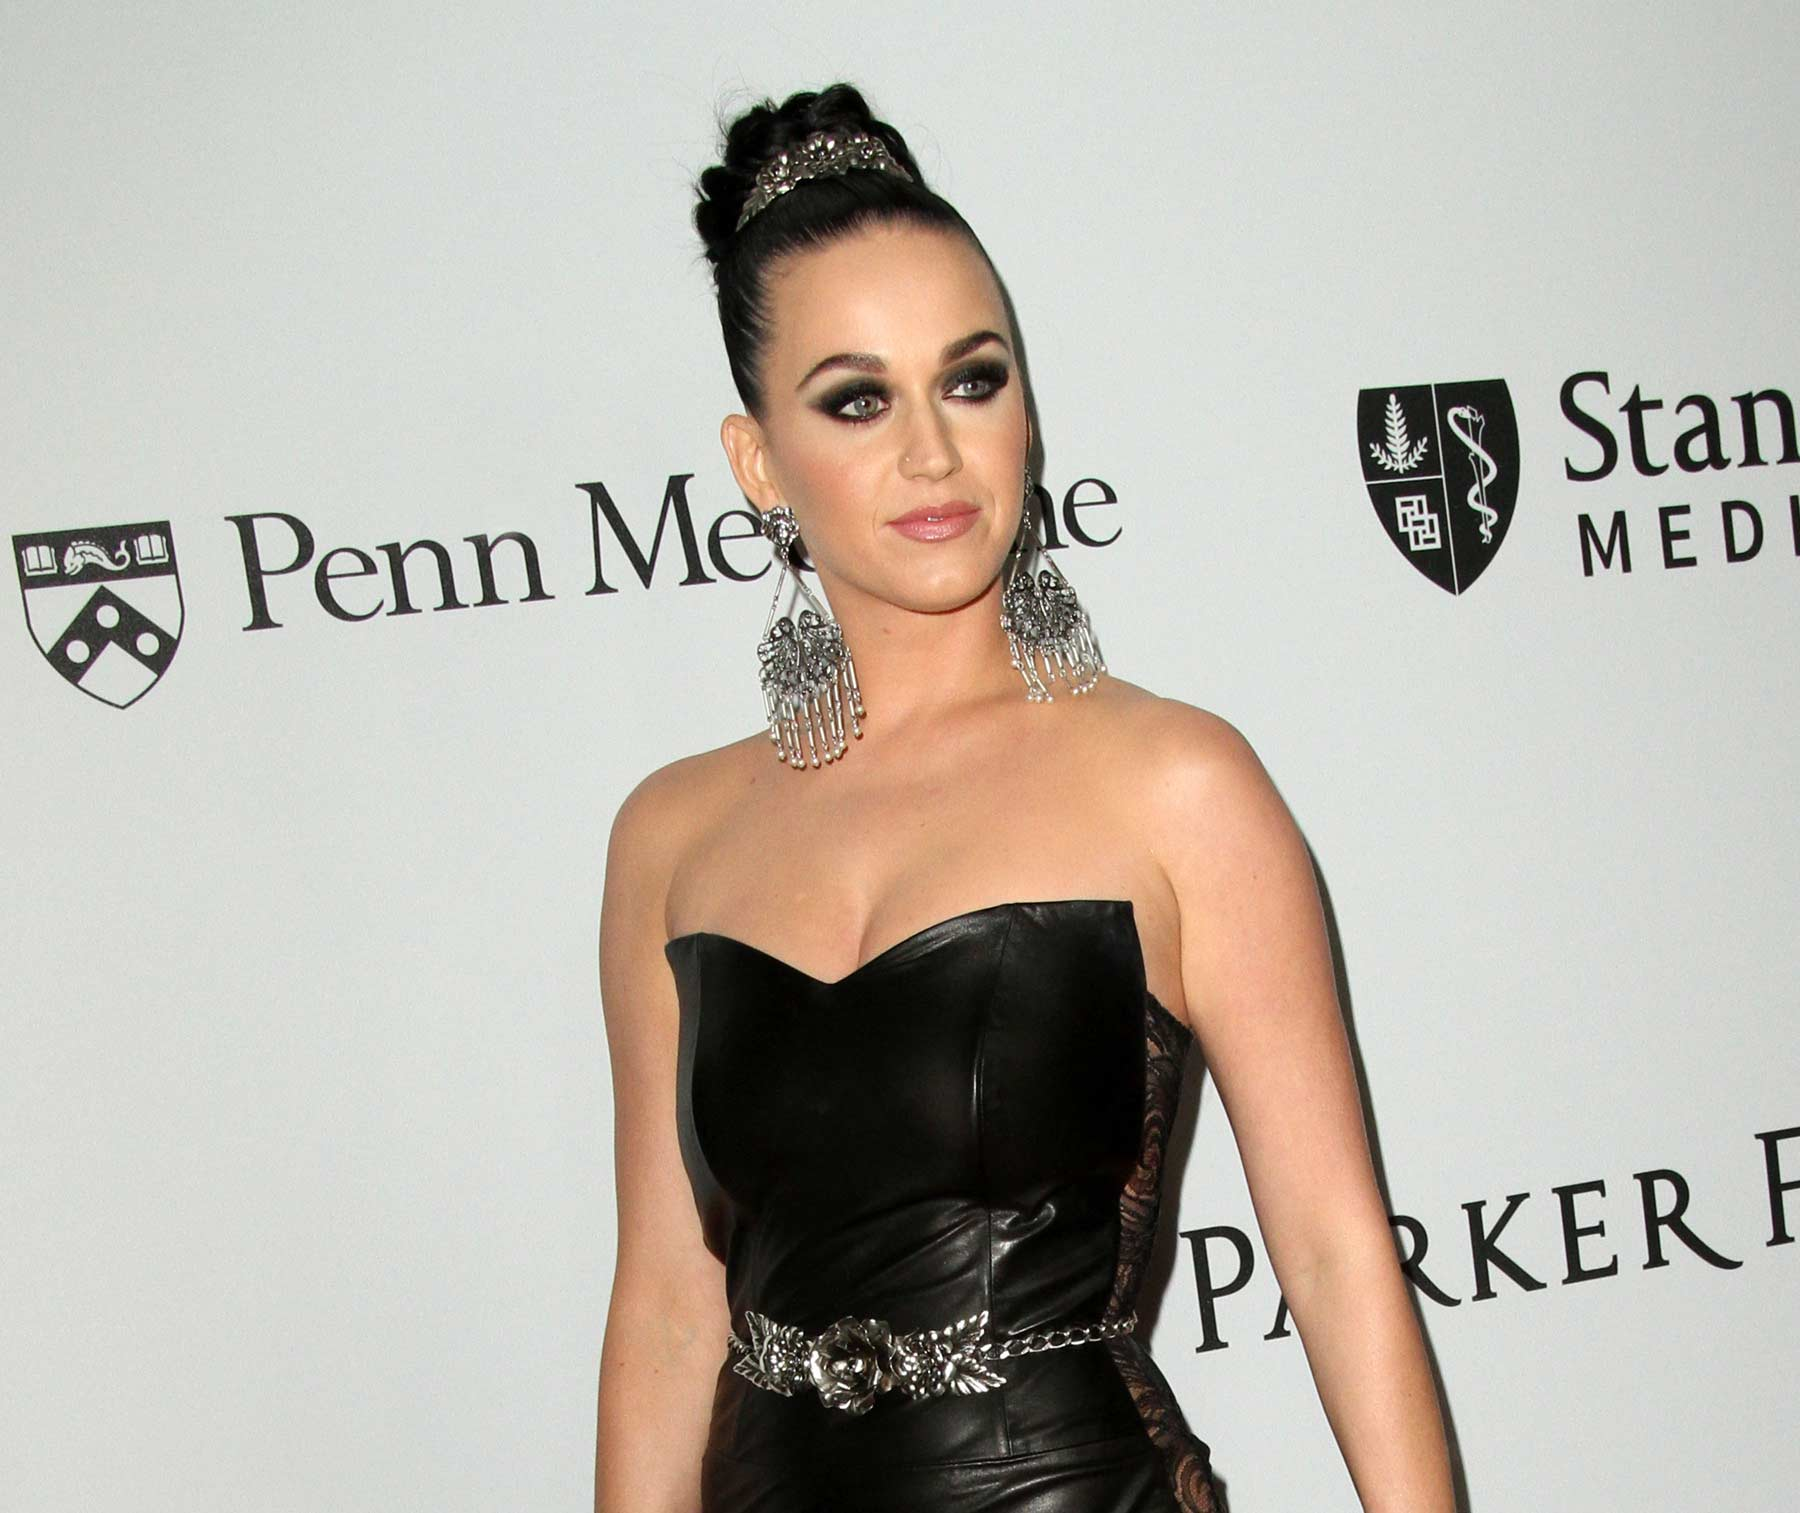 Katy Perry attends The Parker Institute For Cancer Immunotherapy Launch Gala